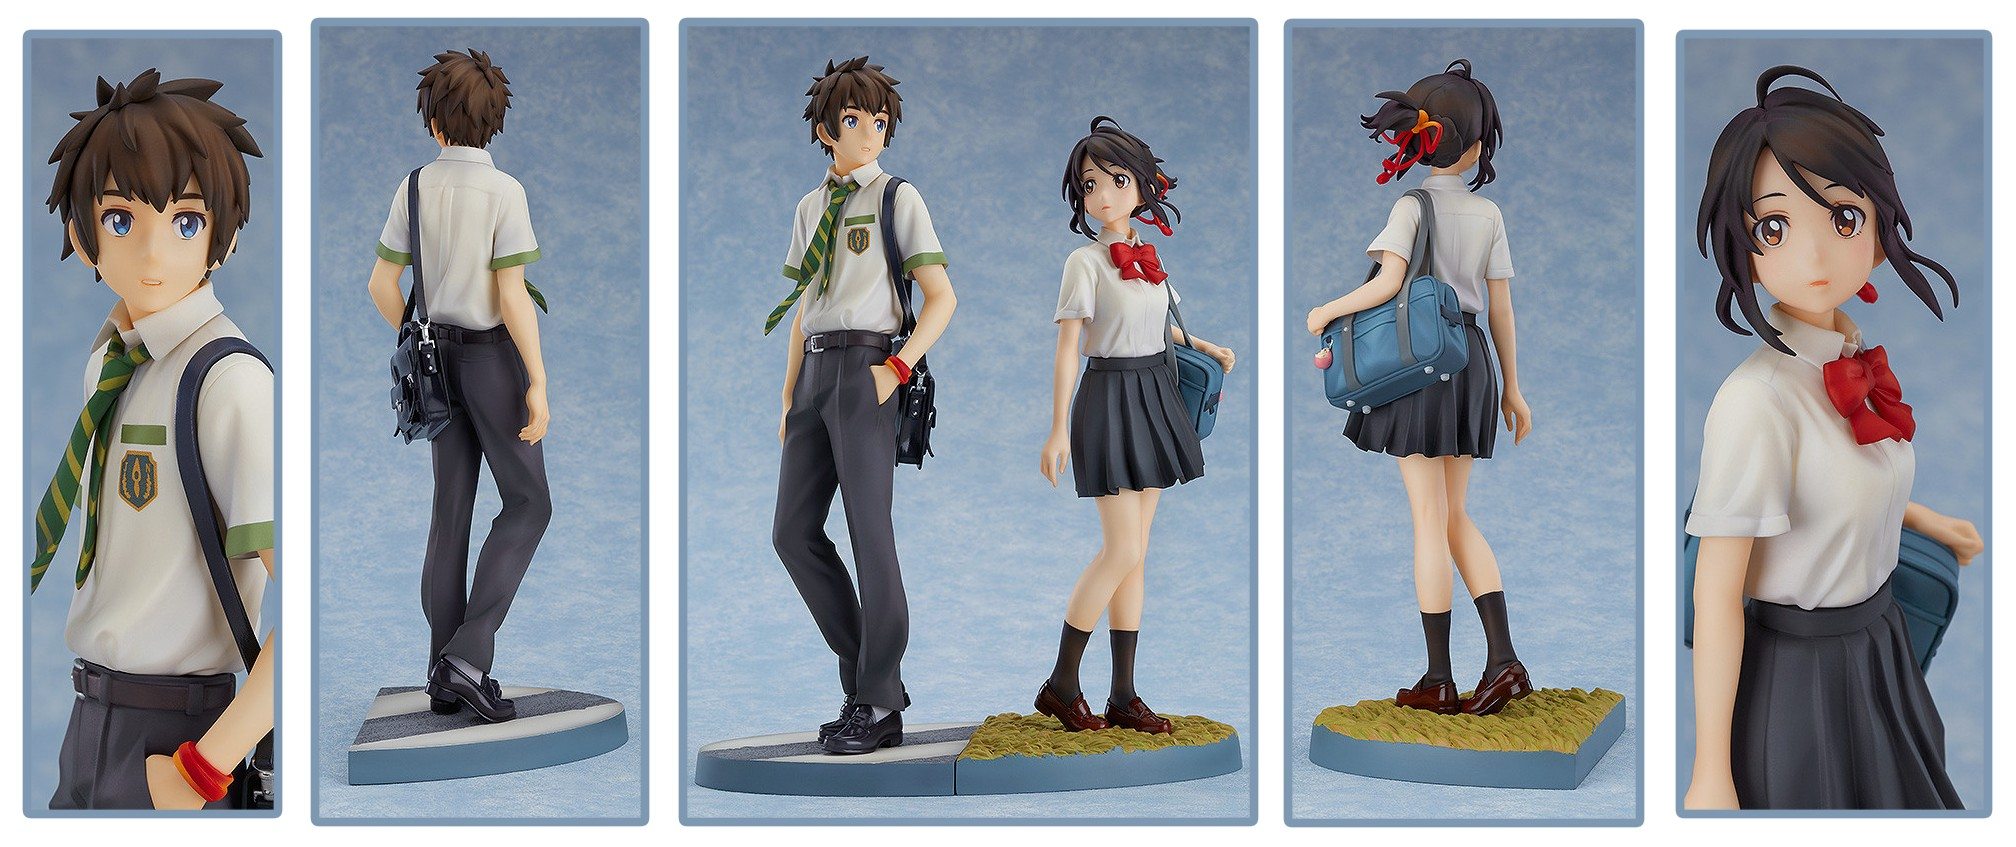 Good Smile Company – Your Name 1/8-scale Taki Tachibana & Mitsuha Miyamizu Figures (March 2018)